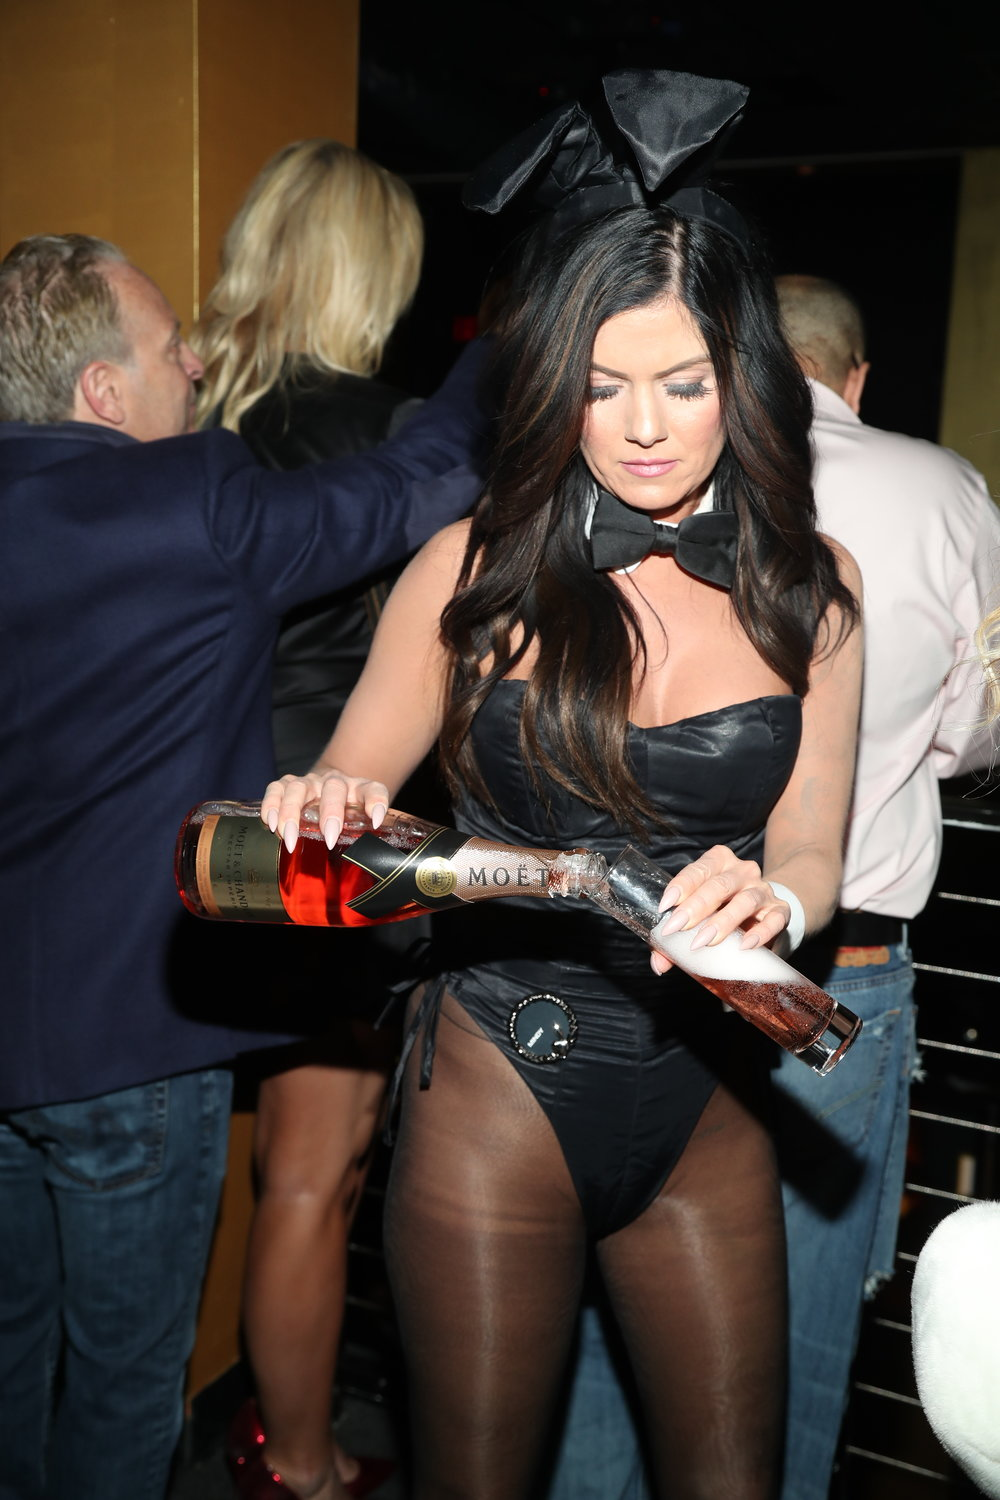 Playmate serving a bottle of Möet